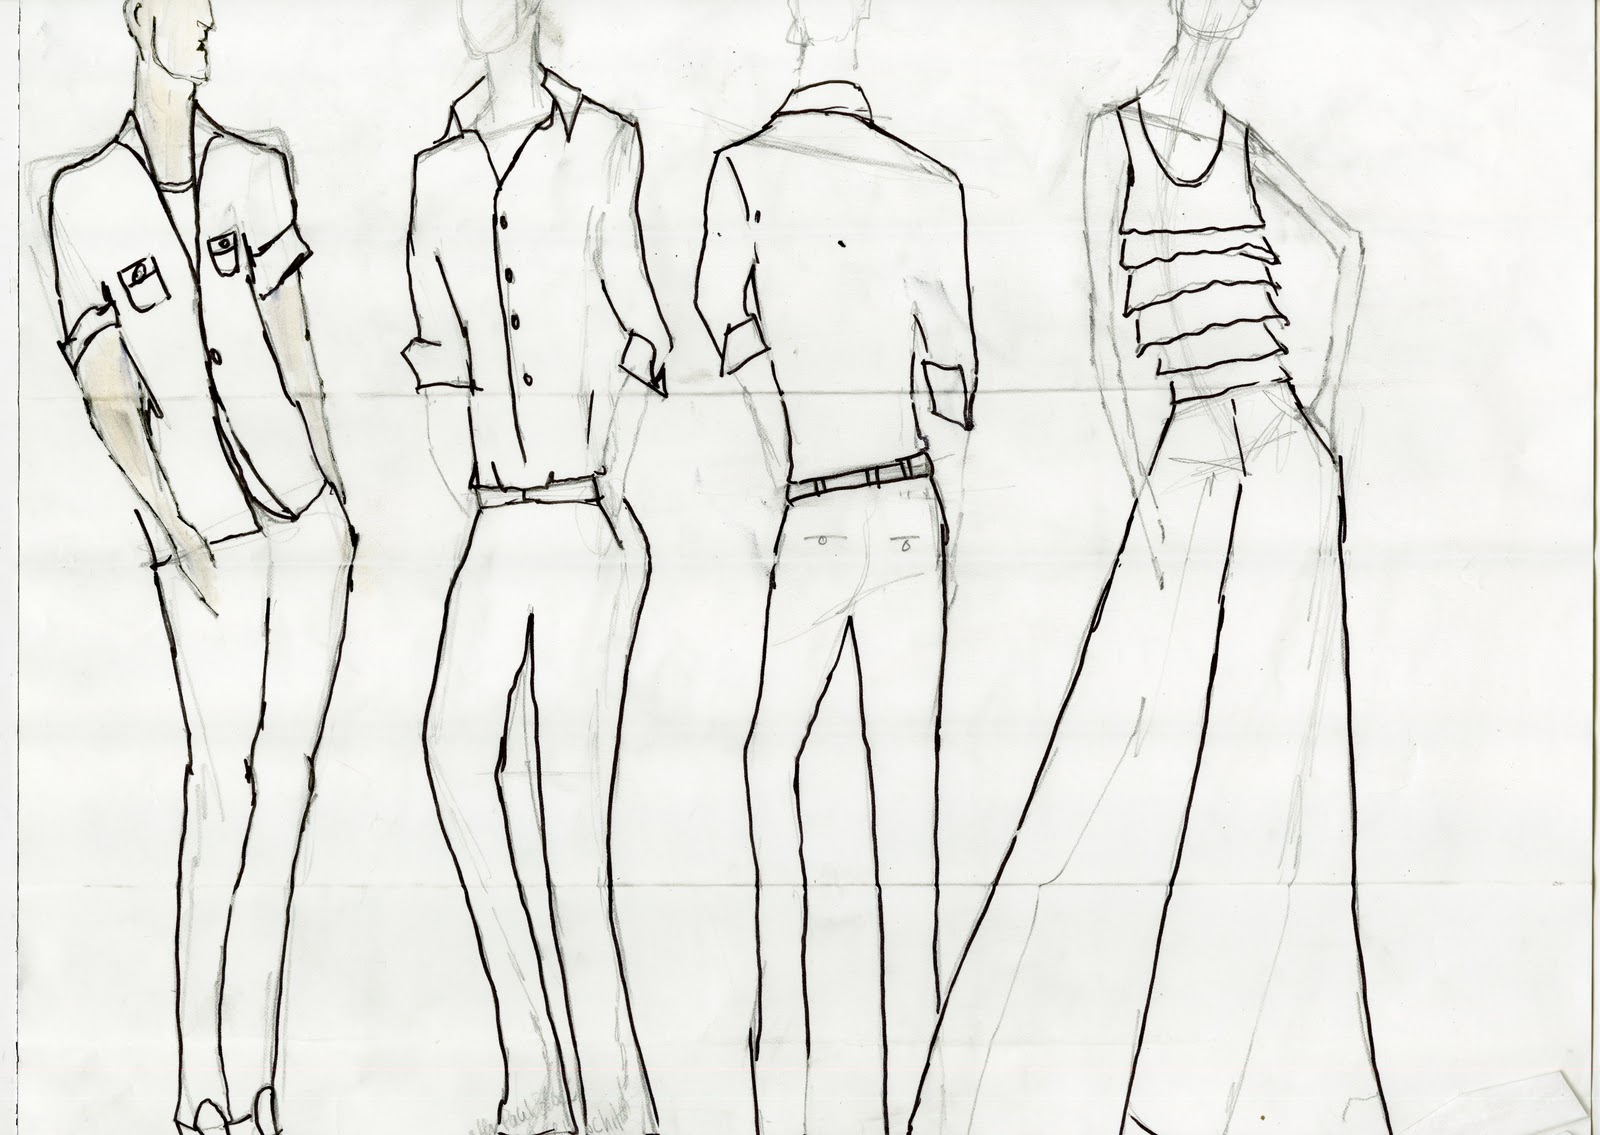 Kelseo Fashion: BODY PROPORTION MALE & FEMALE